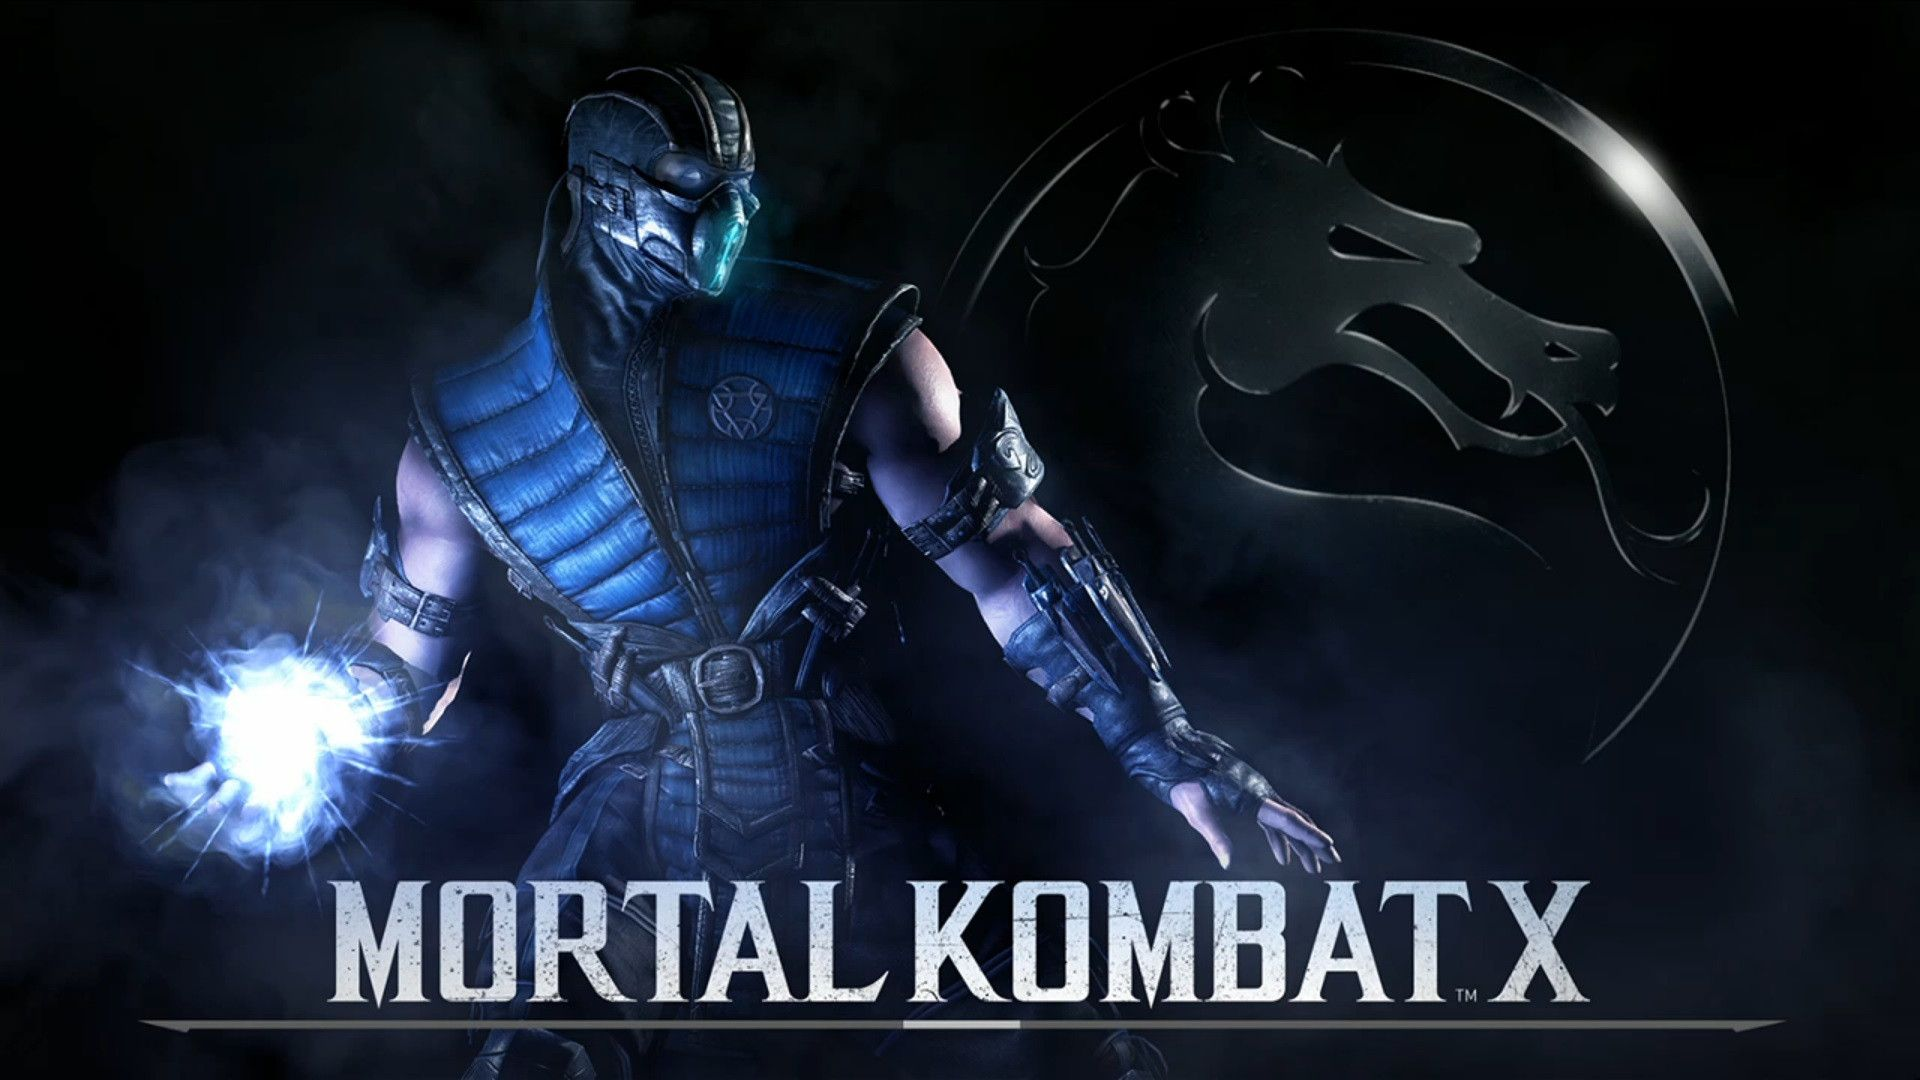 Mortal Kombat 11 Wallpapers Top Free Mortal Kombat 11